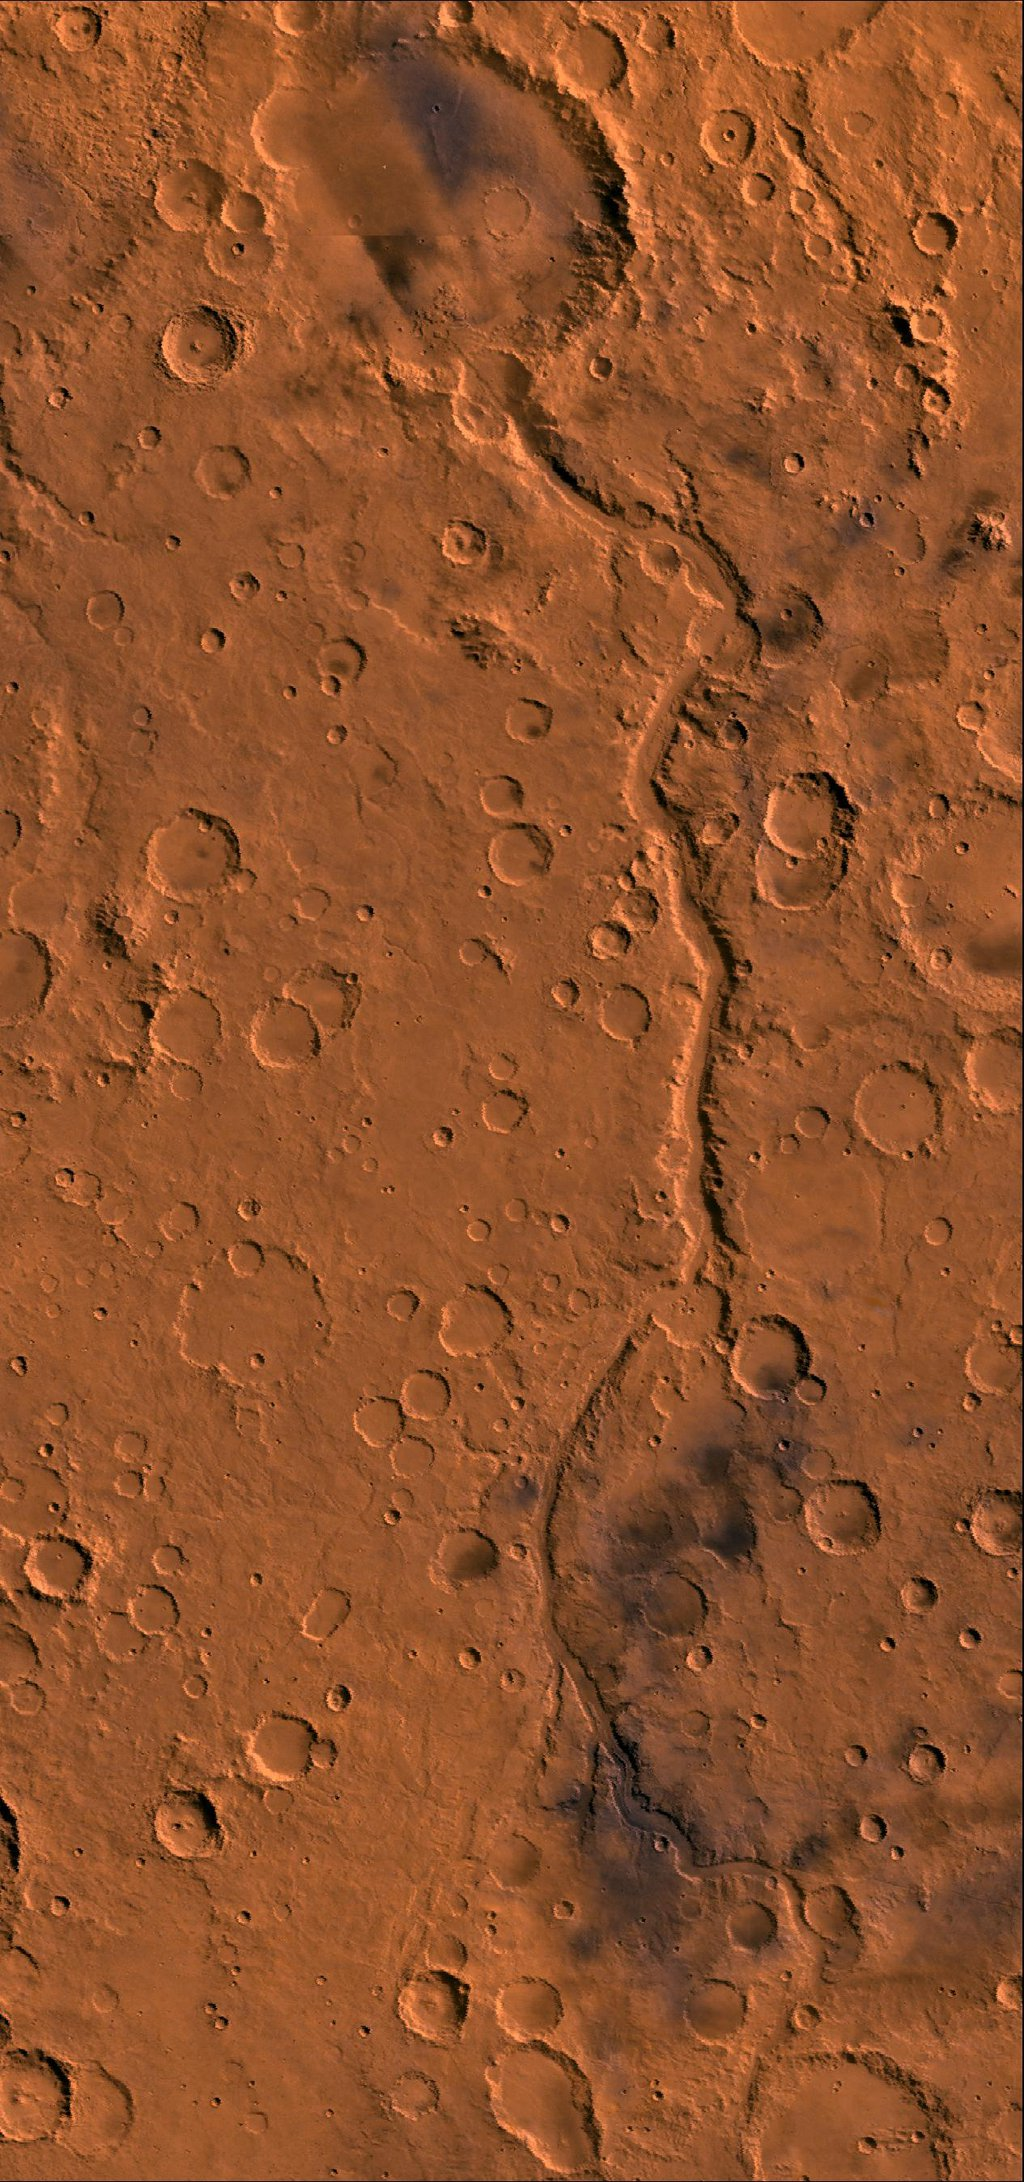 Ma'adim Vallis region of Mars. This image shows the 600-km-long channel that drained into impact crater Gusev. Crater Gusev is about 160 km in diameter, as seen by NASA's Viking spacecraft.